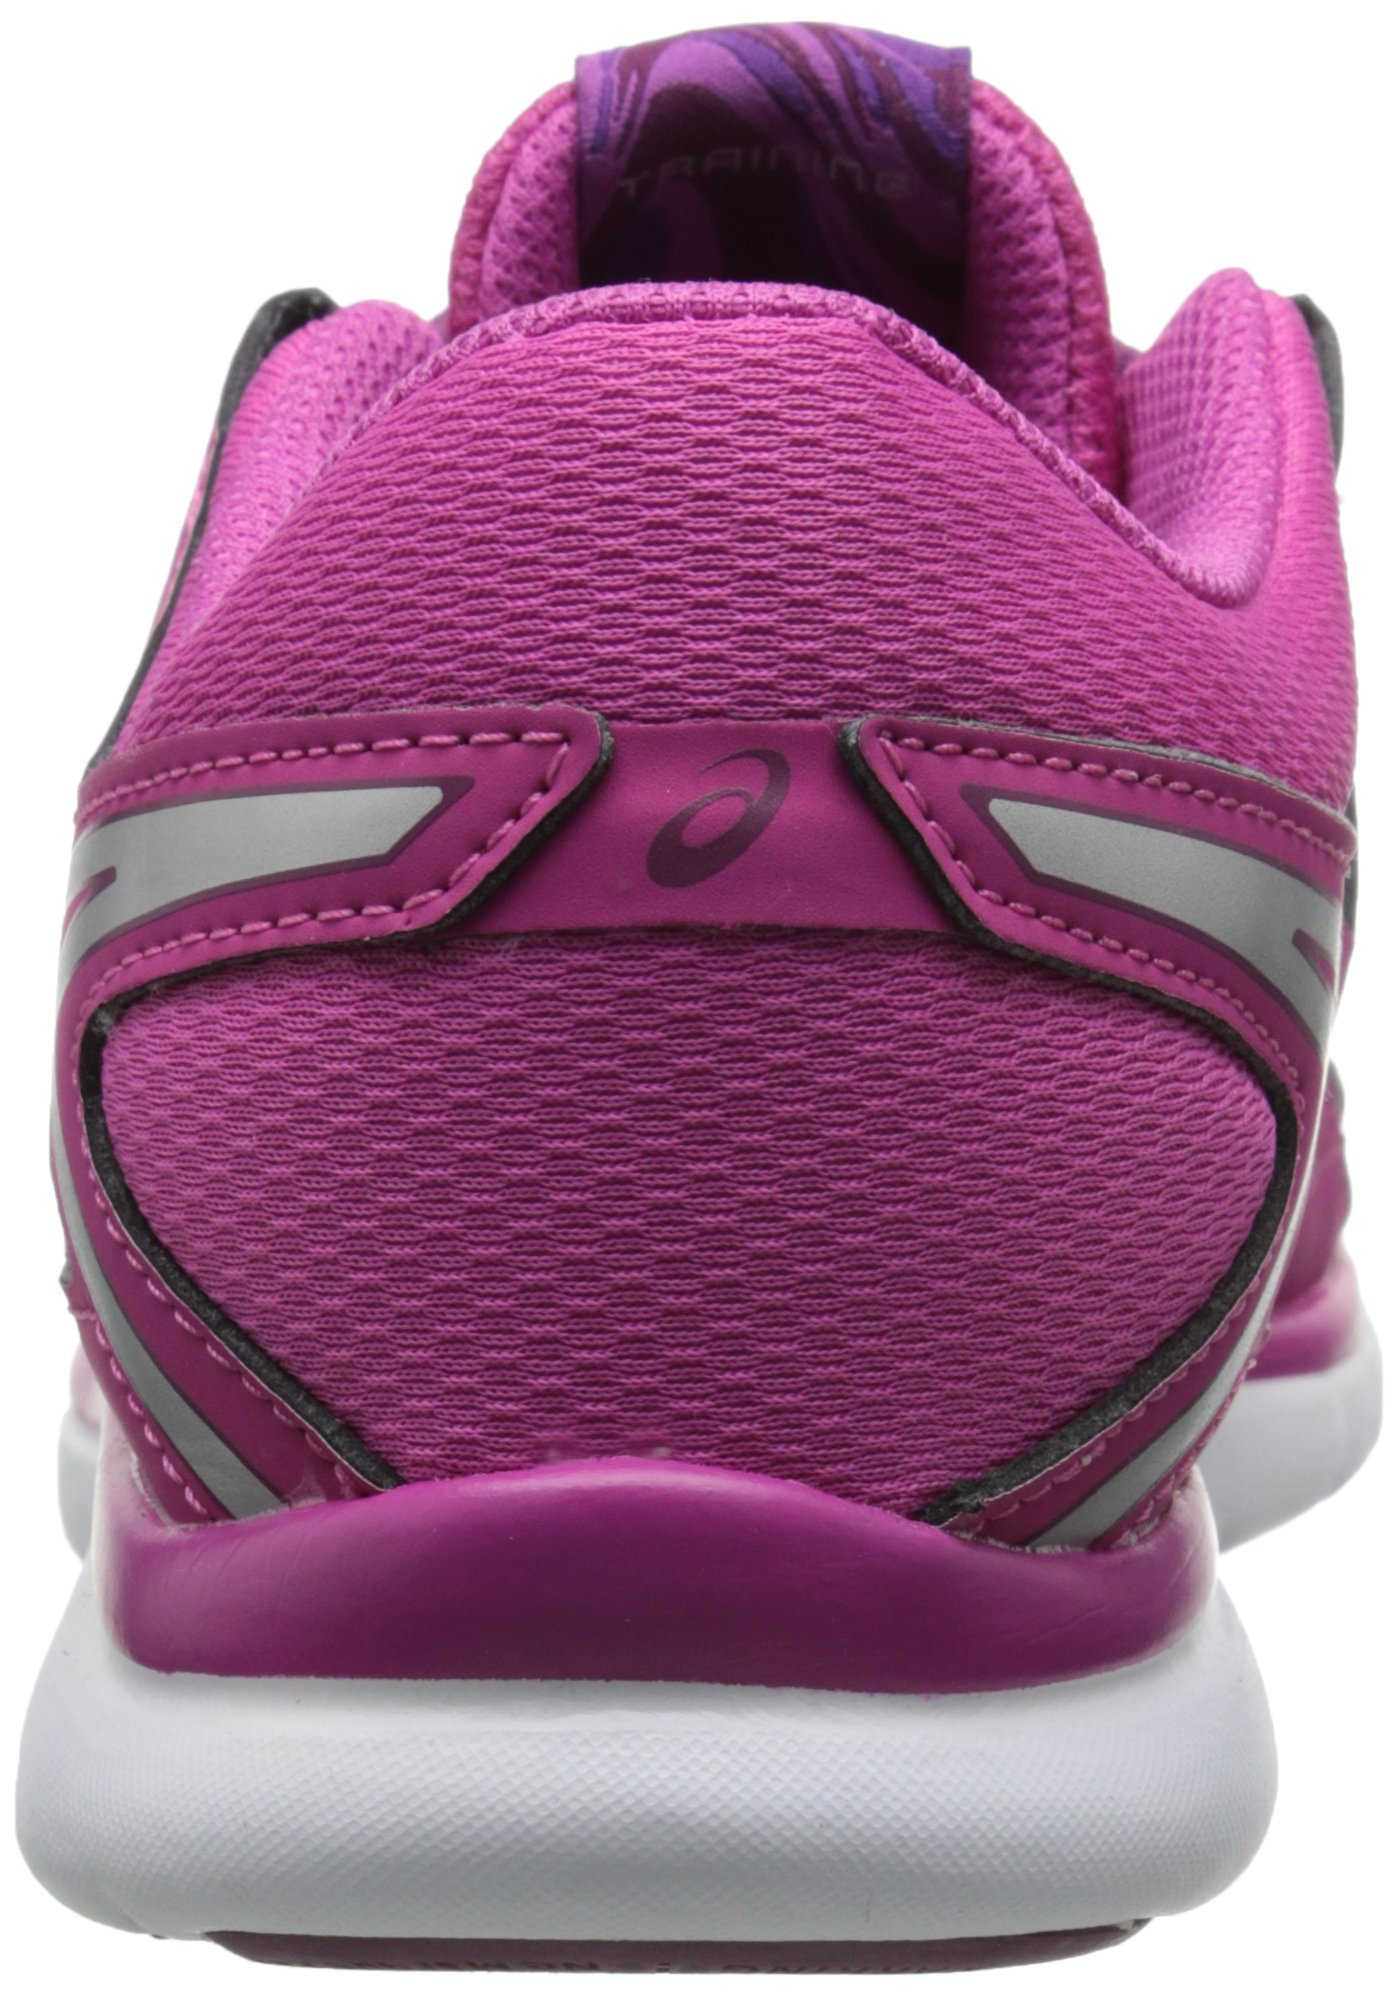 81CfpUzPlwL - ASICS Women's Gel Fit Tempo 2 Fitness Shoe